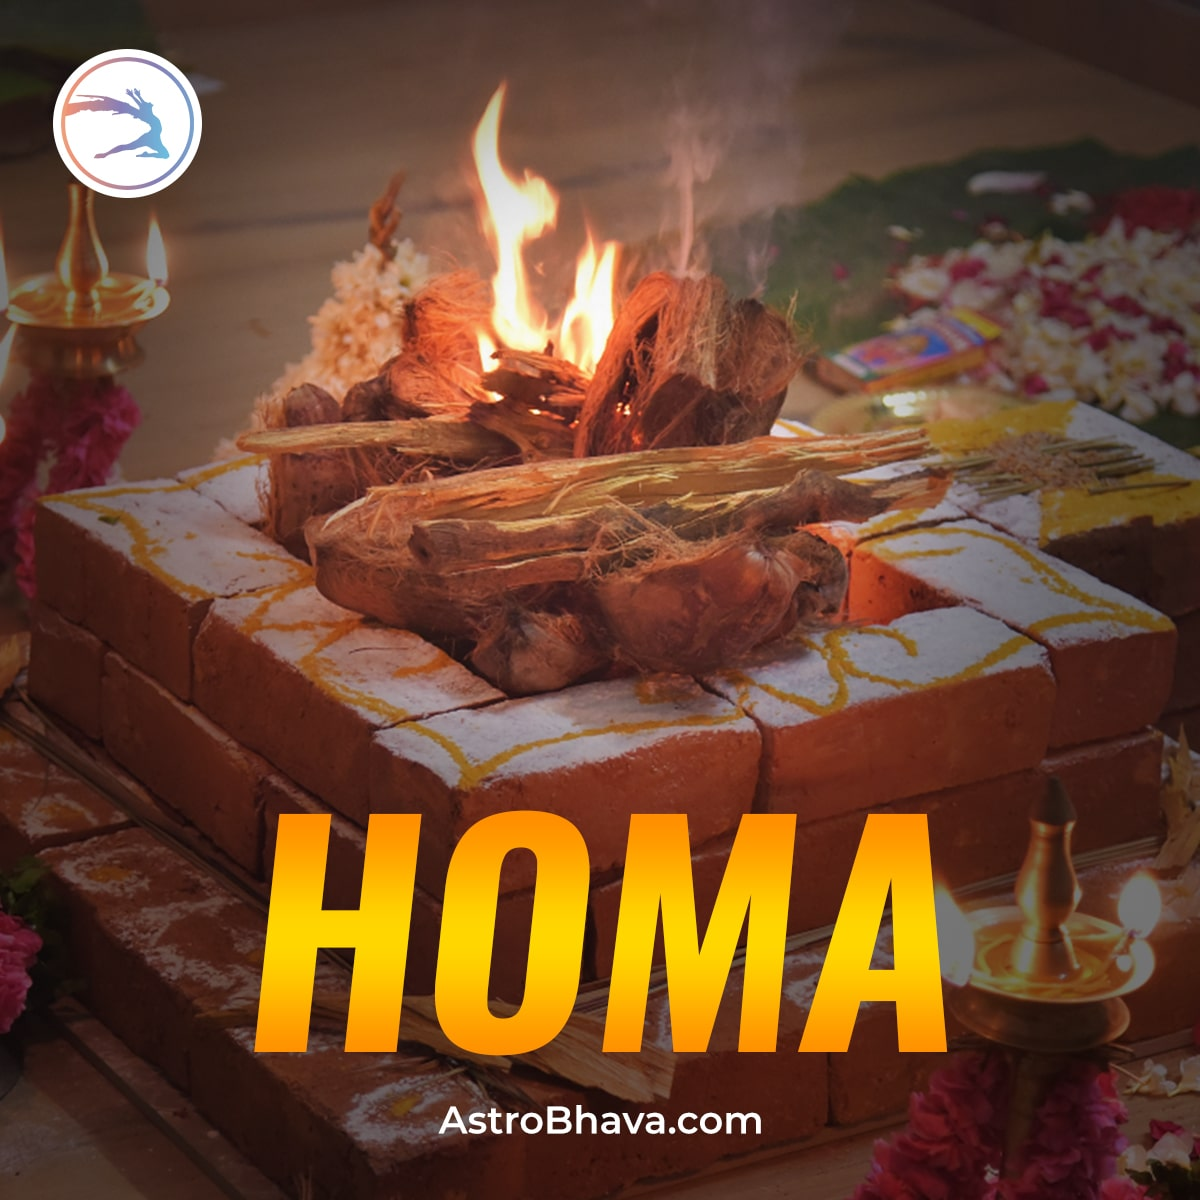 AstroBhava - Homa, The Ancient Indian Vedic Fire Ritual